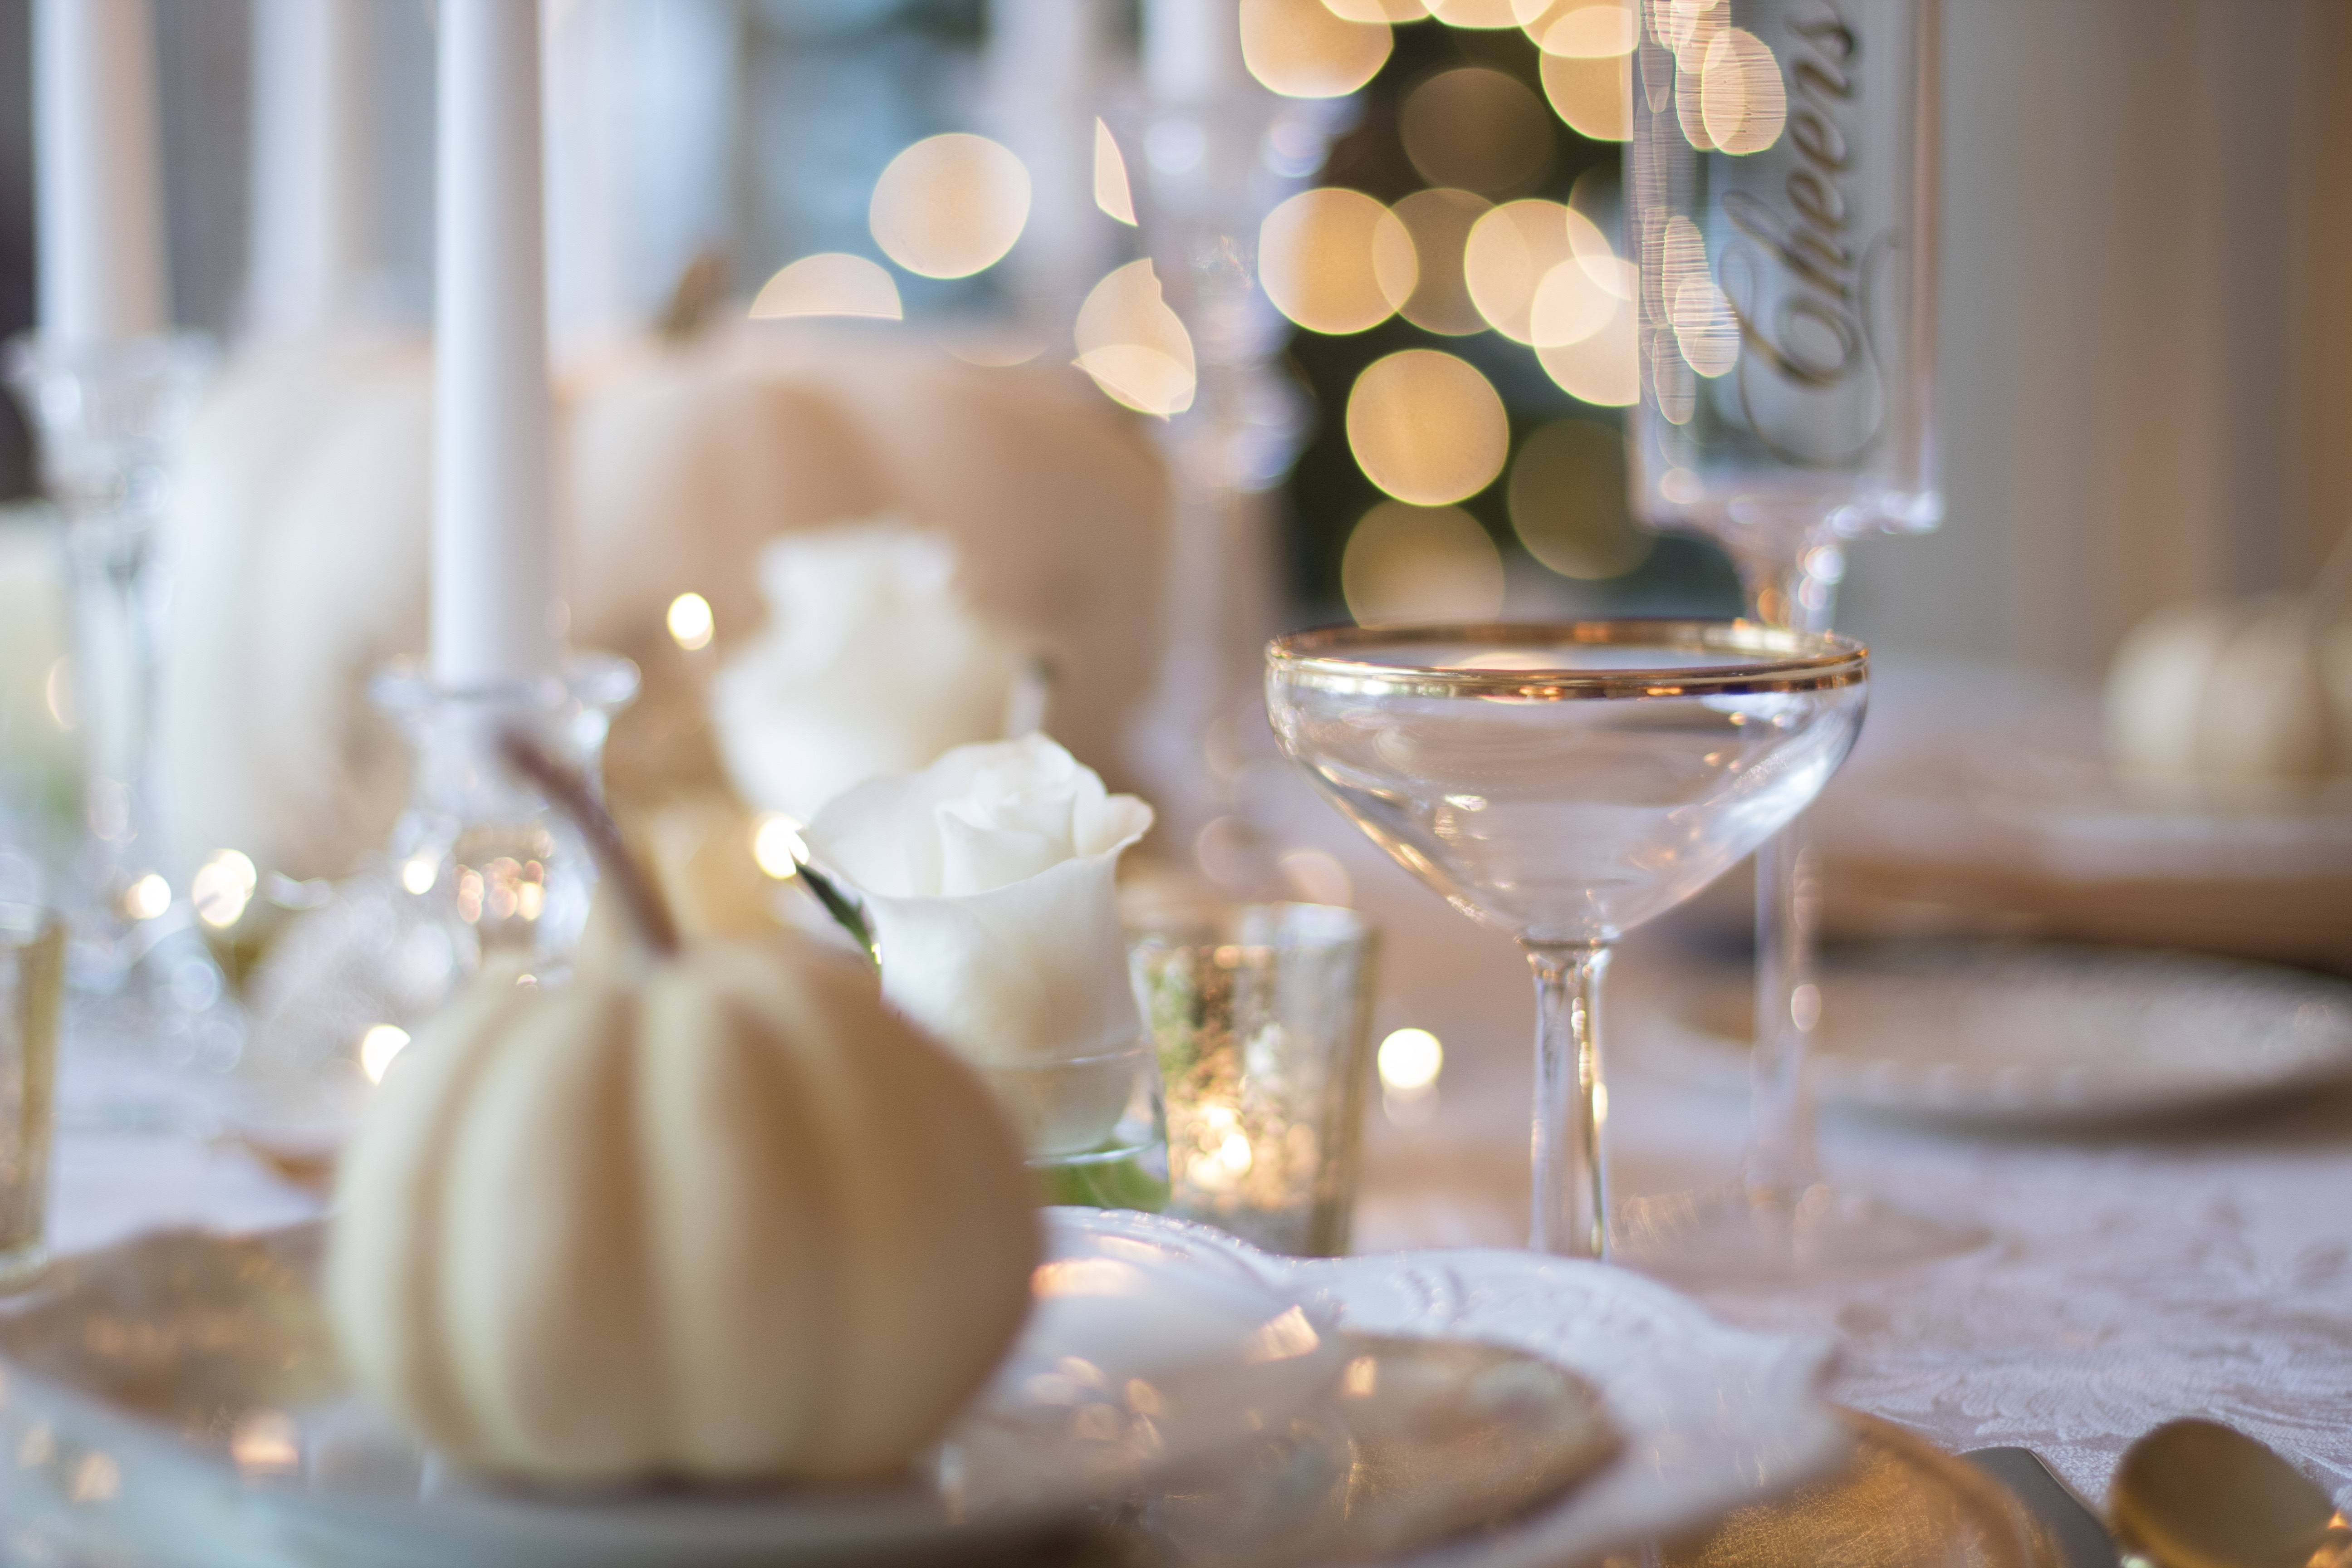 Prepare Yourself for Holiday Entertaining